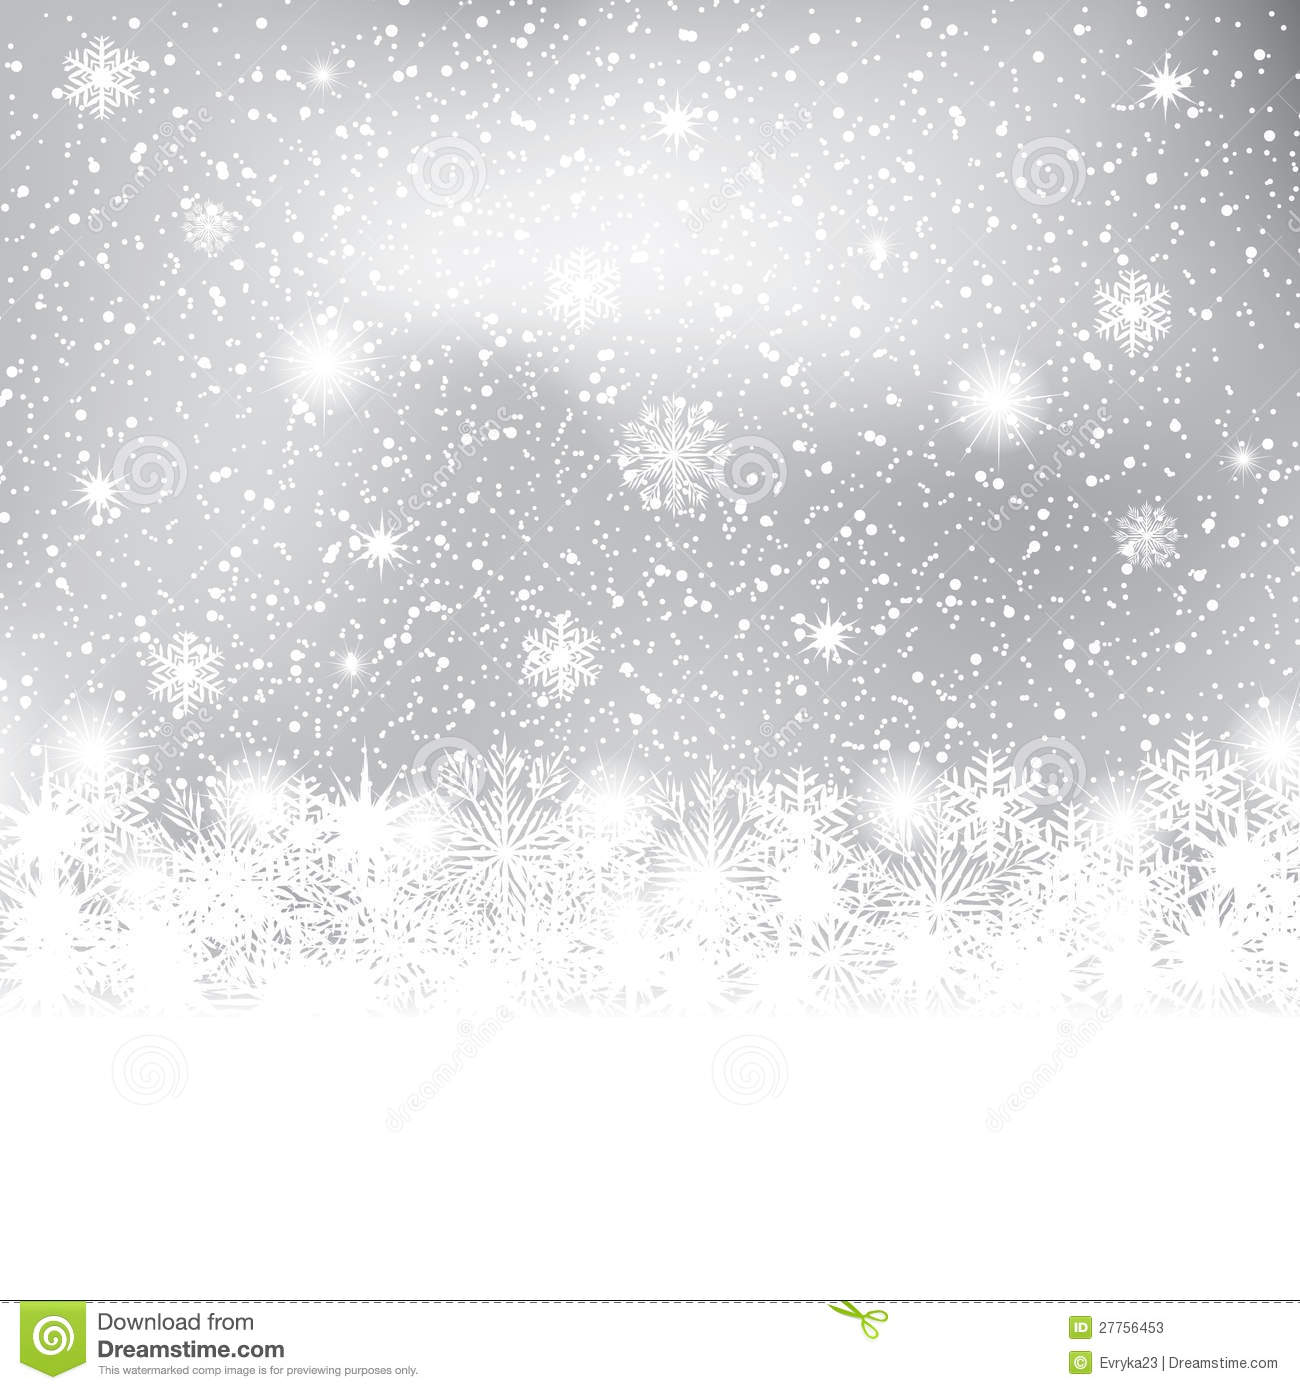 Falling Snow Wallpaper Iphone 5 Abstract Winter Background Stock Photos Image 27756453